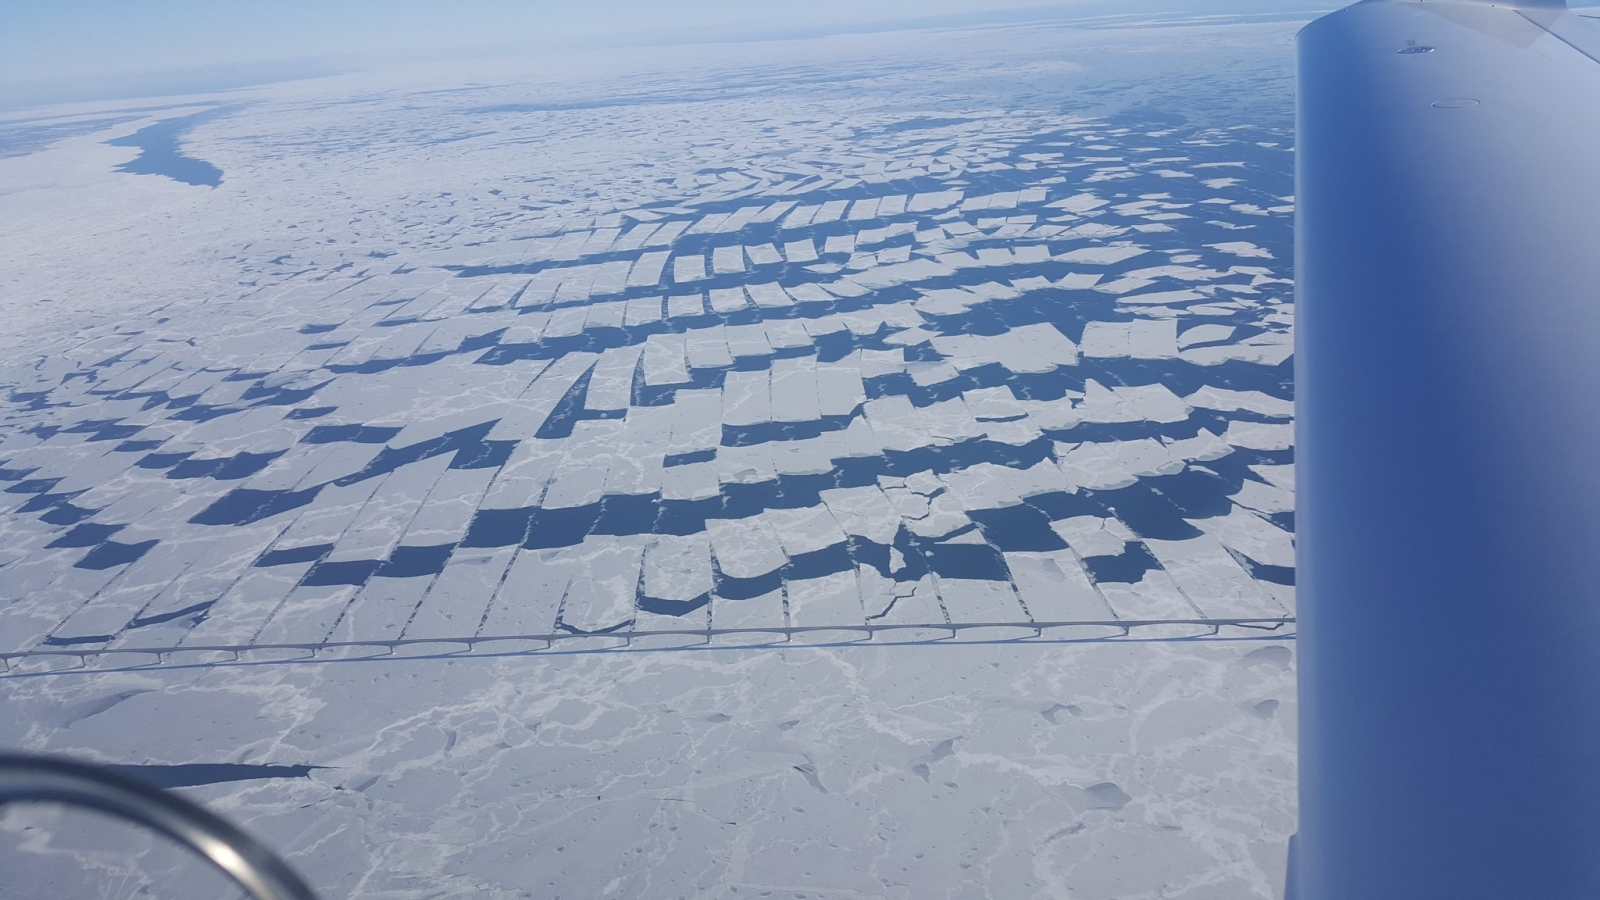 Strange ice patterns Canada.